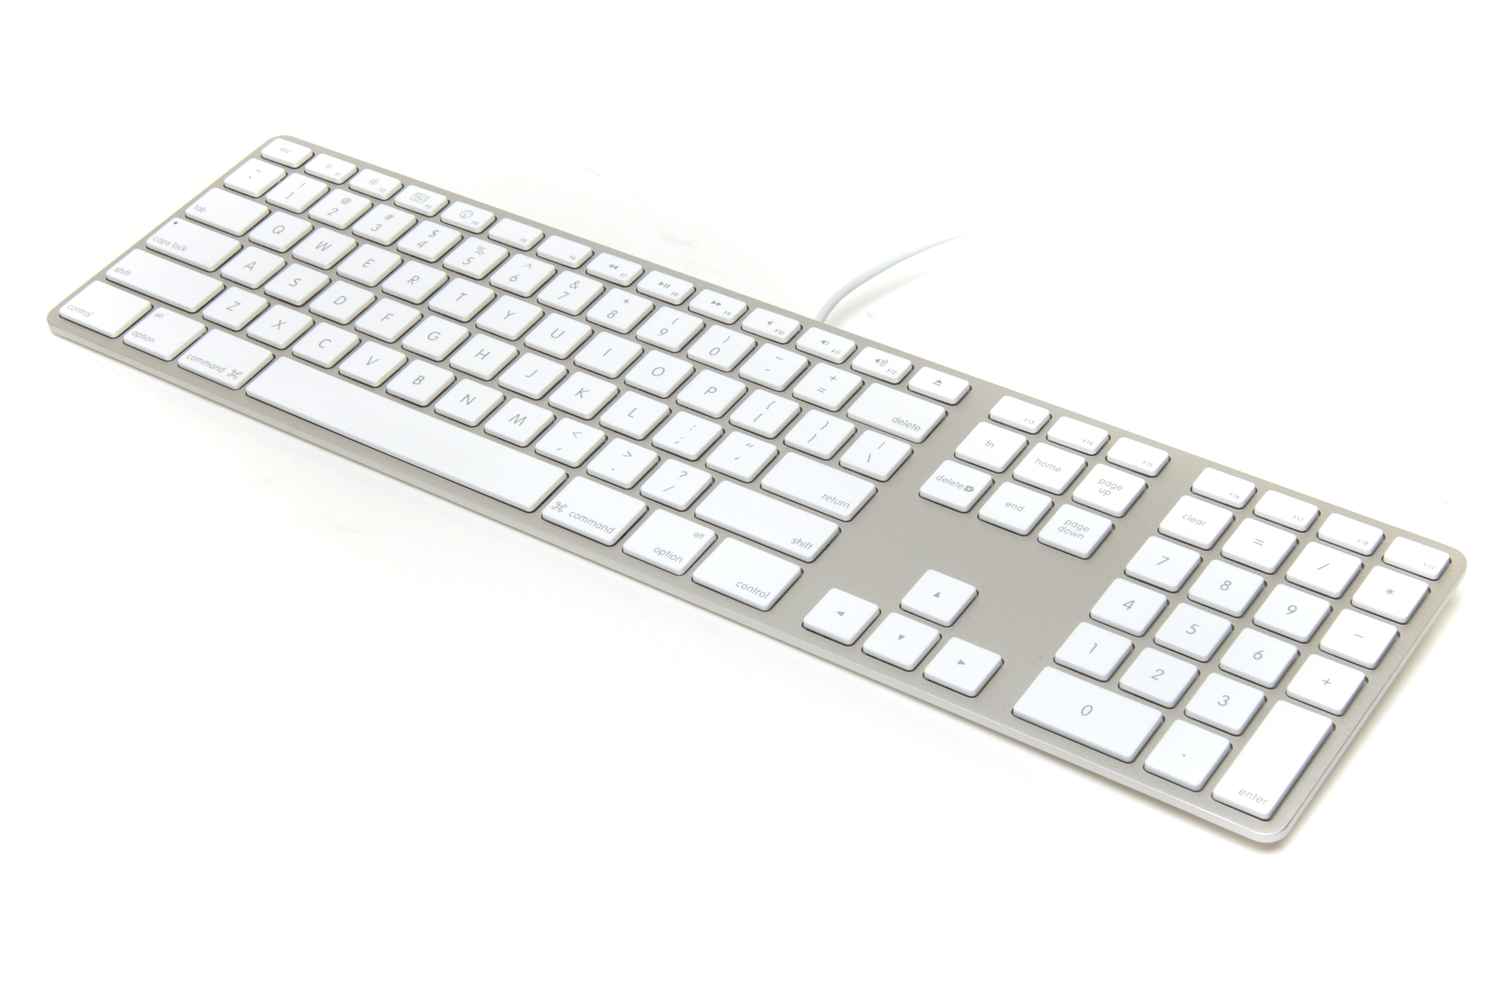 apple wired keyboard review pc components keyboards mice input devices pc world australia. Black Bedroom Furniture Sets. Home Design Ideas